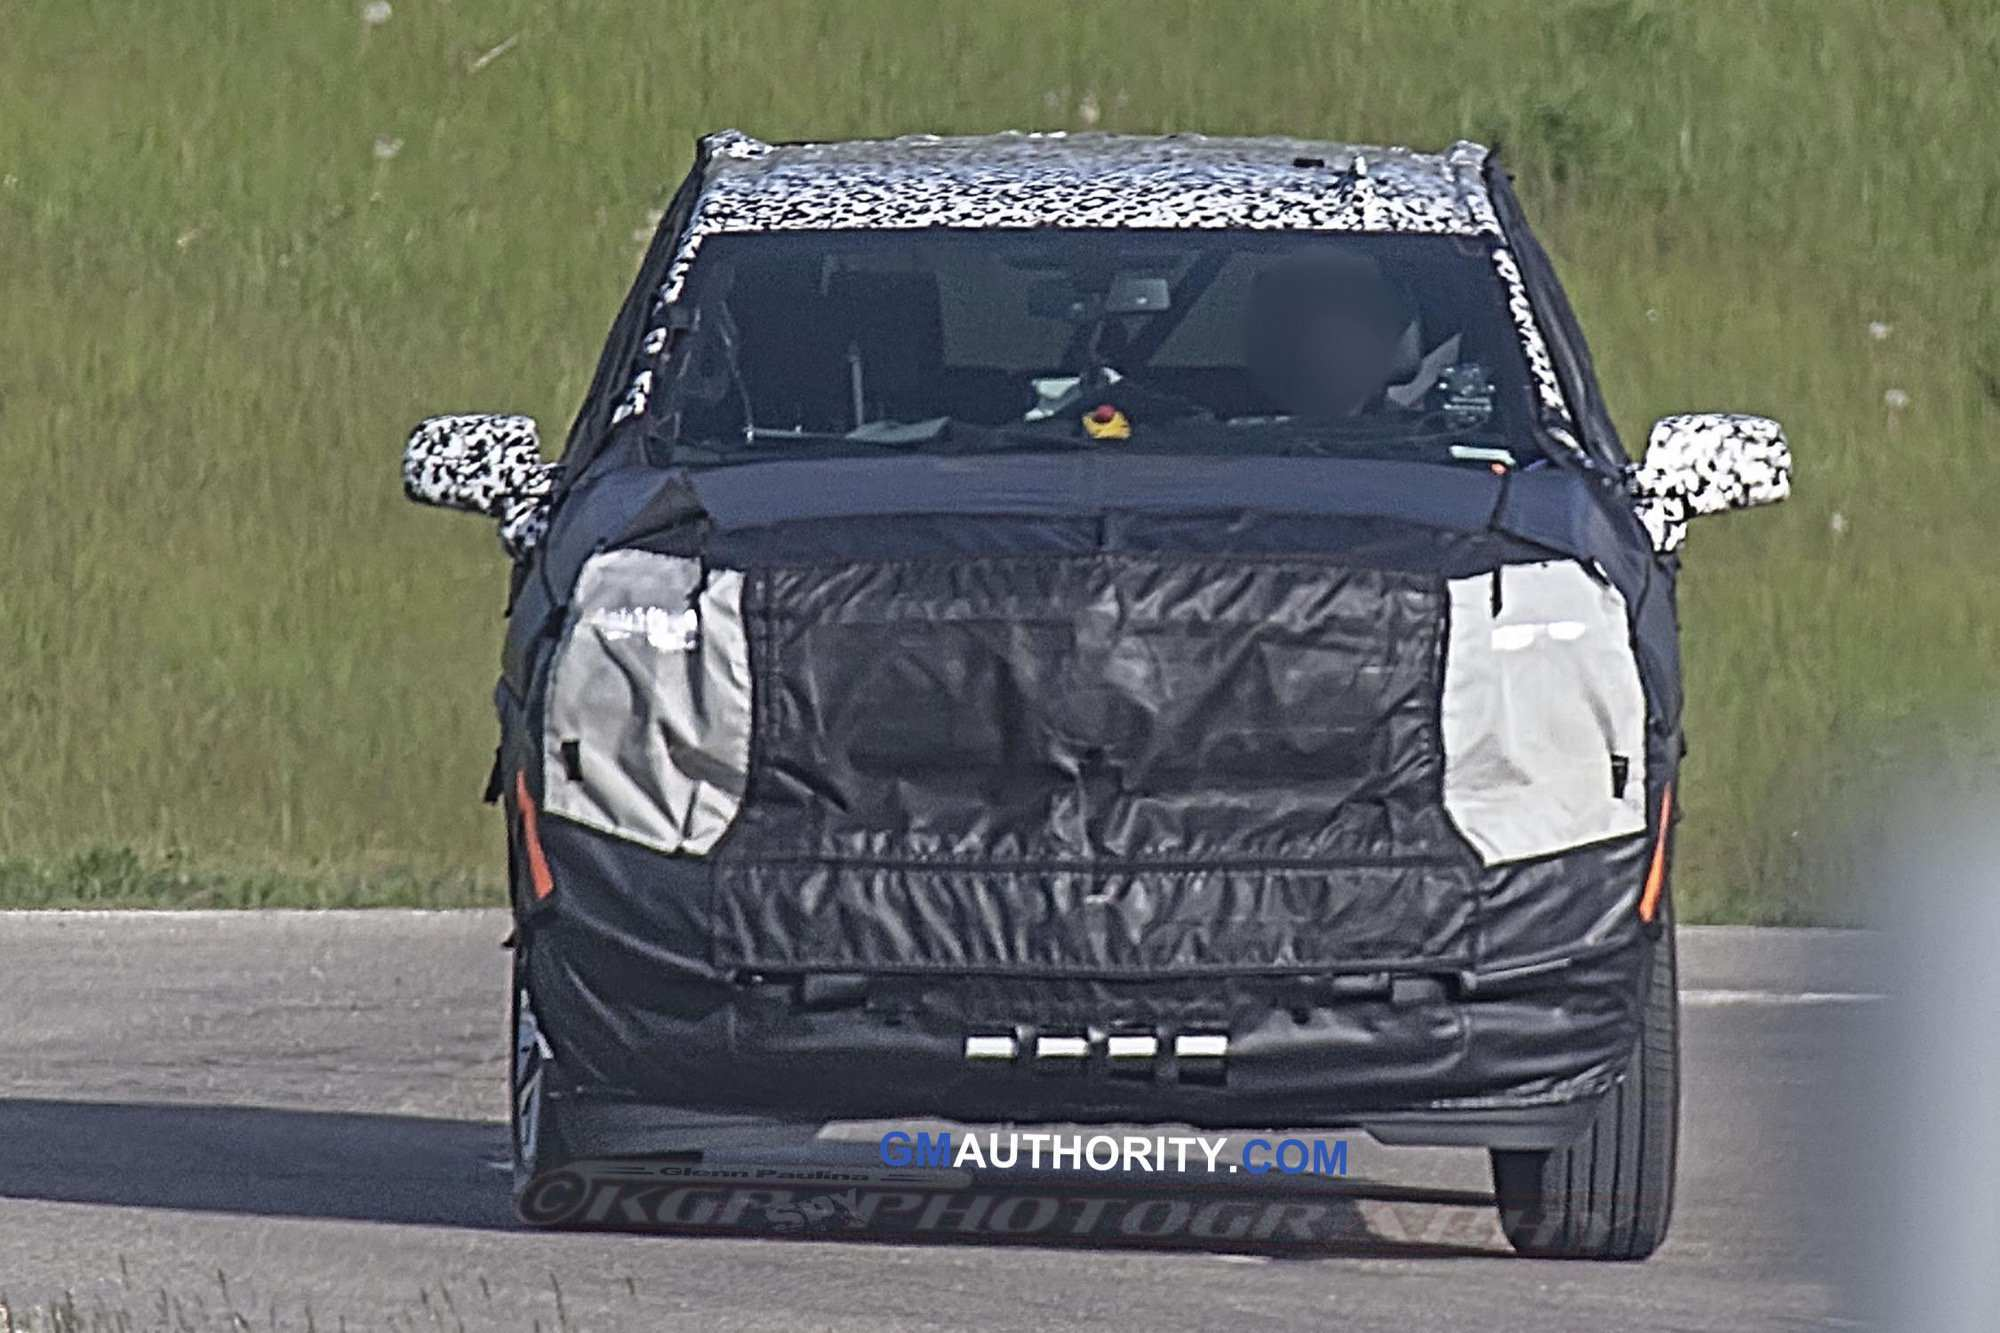 77 Concept of 2020 Chevy Suburban Price with 2020 Chevy Suburban